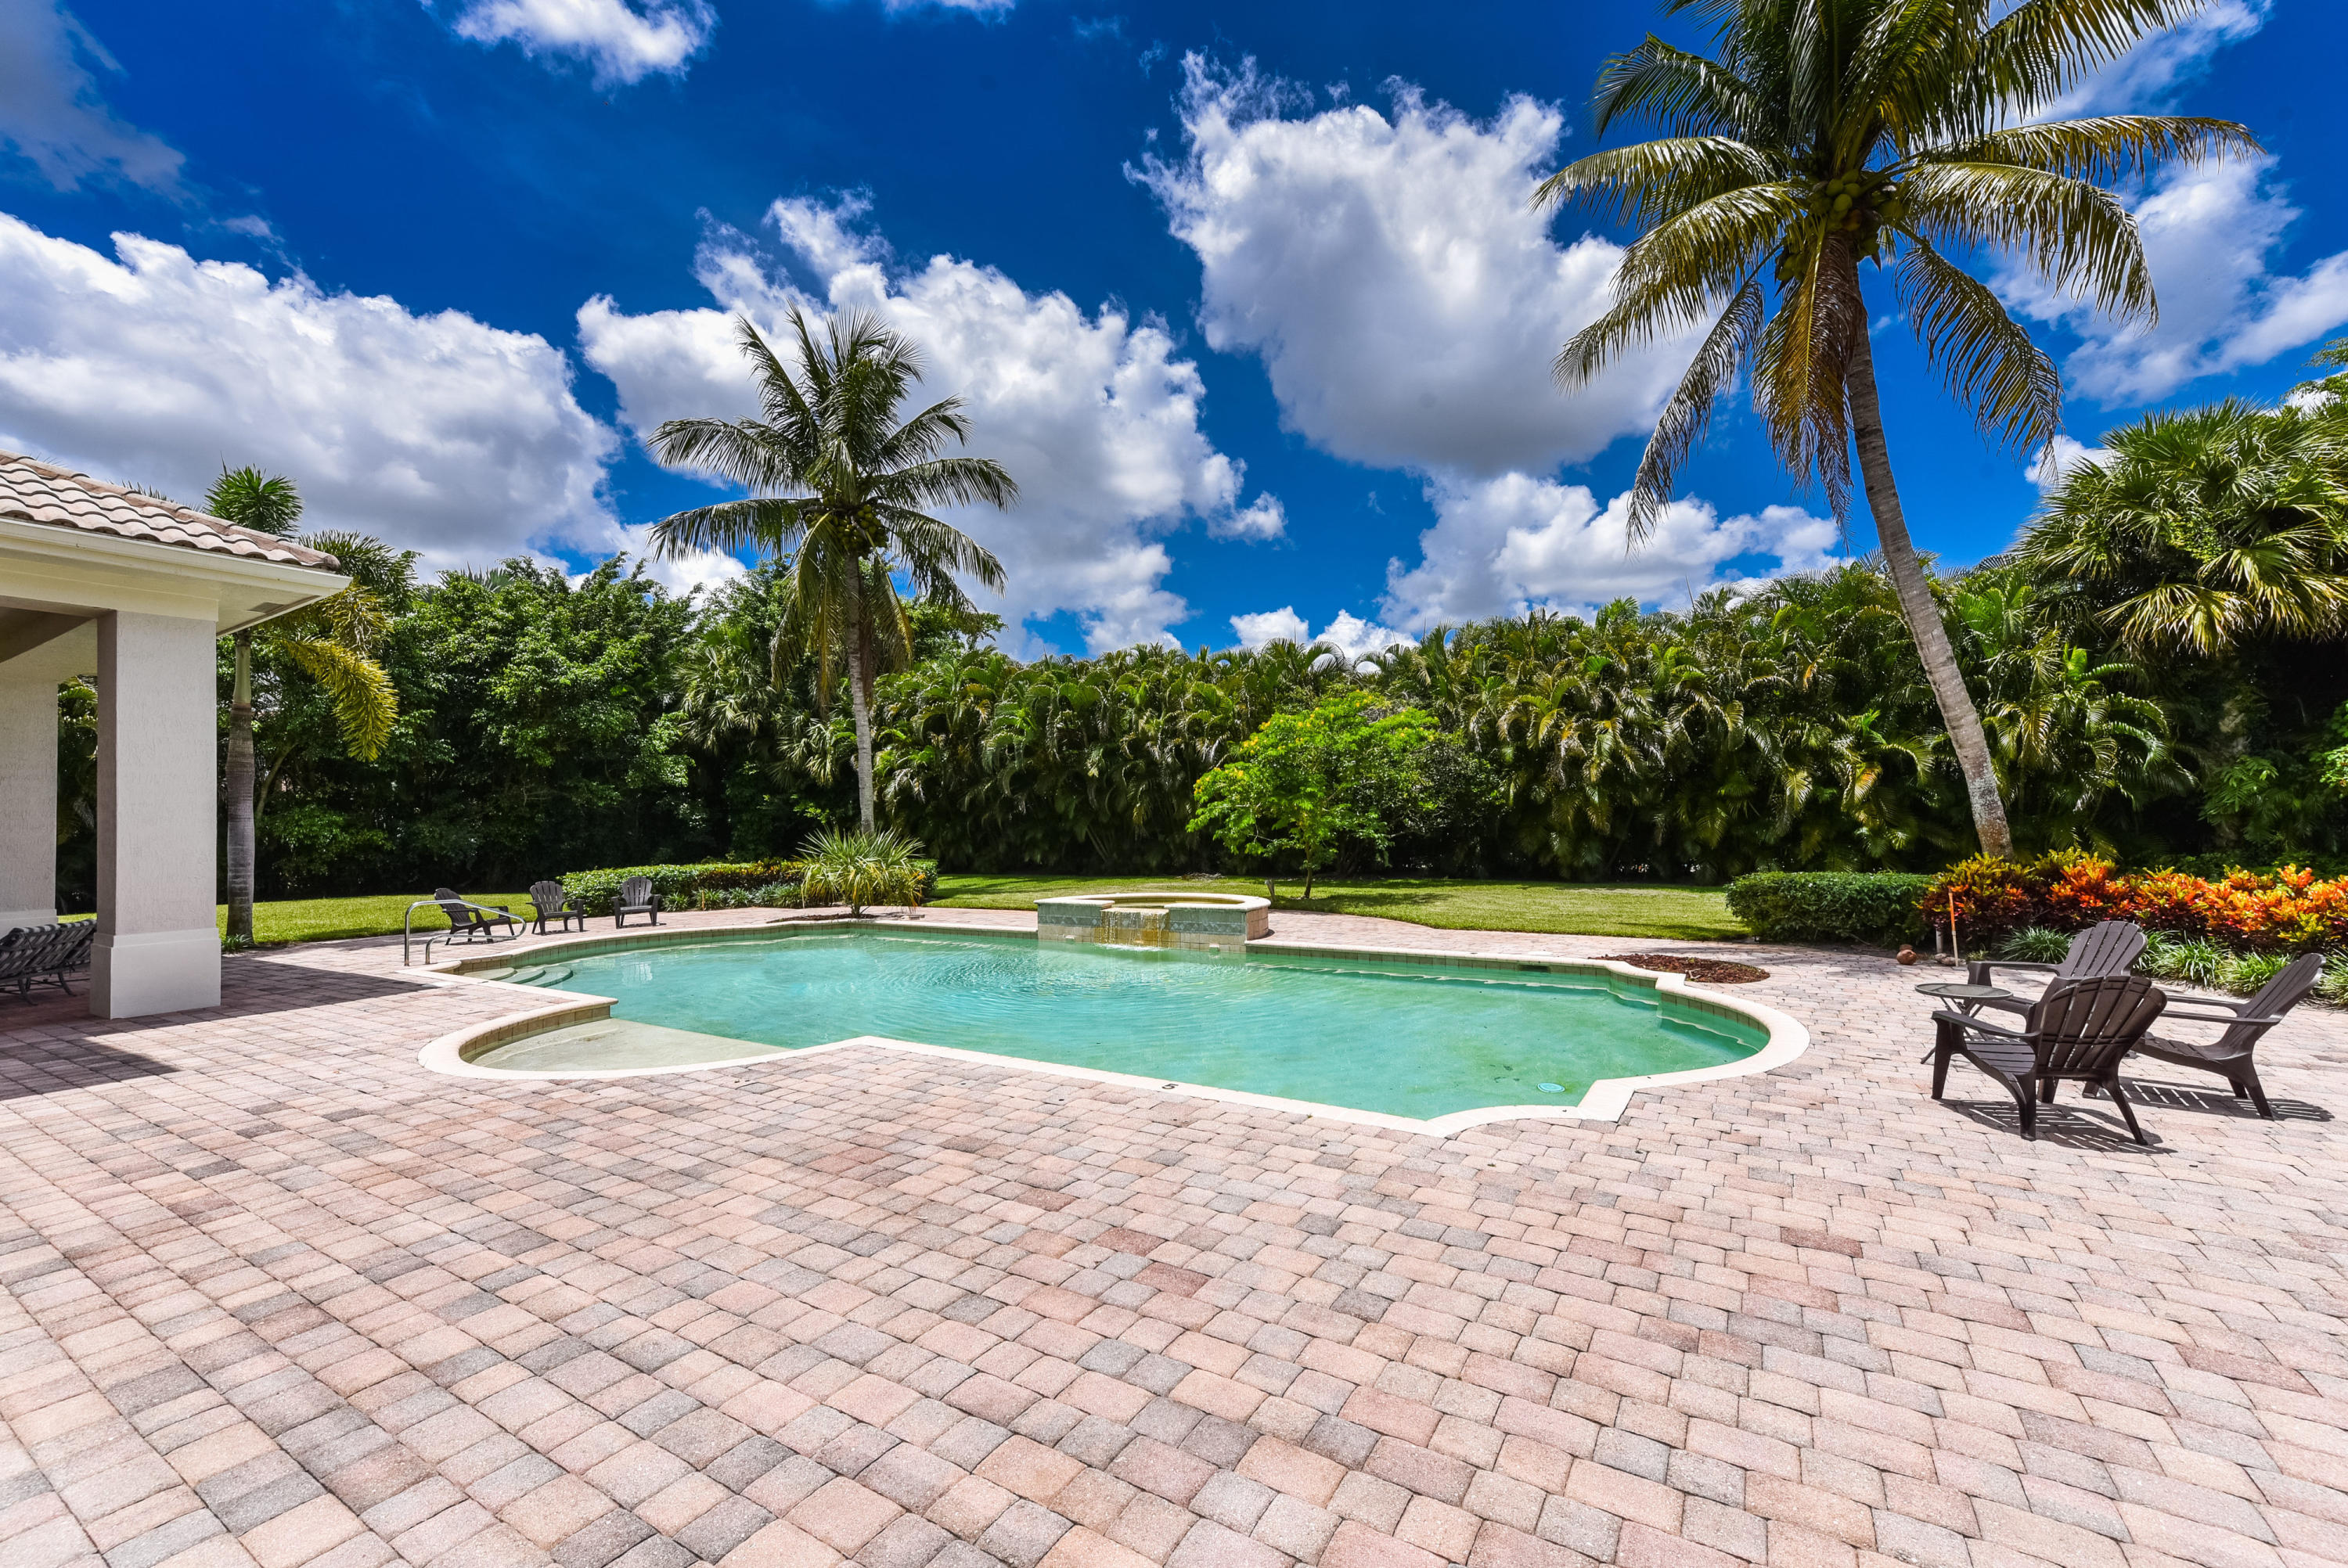 18105 Long Lake Drive, Boca Raton, Florida 33496, 6 Bedrooms Bedrooms, ,7.1 BathroomsBathrooms,Single family detached,For sale,Long Lake,RX-10634009